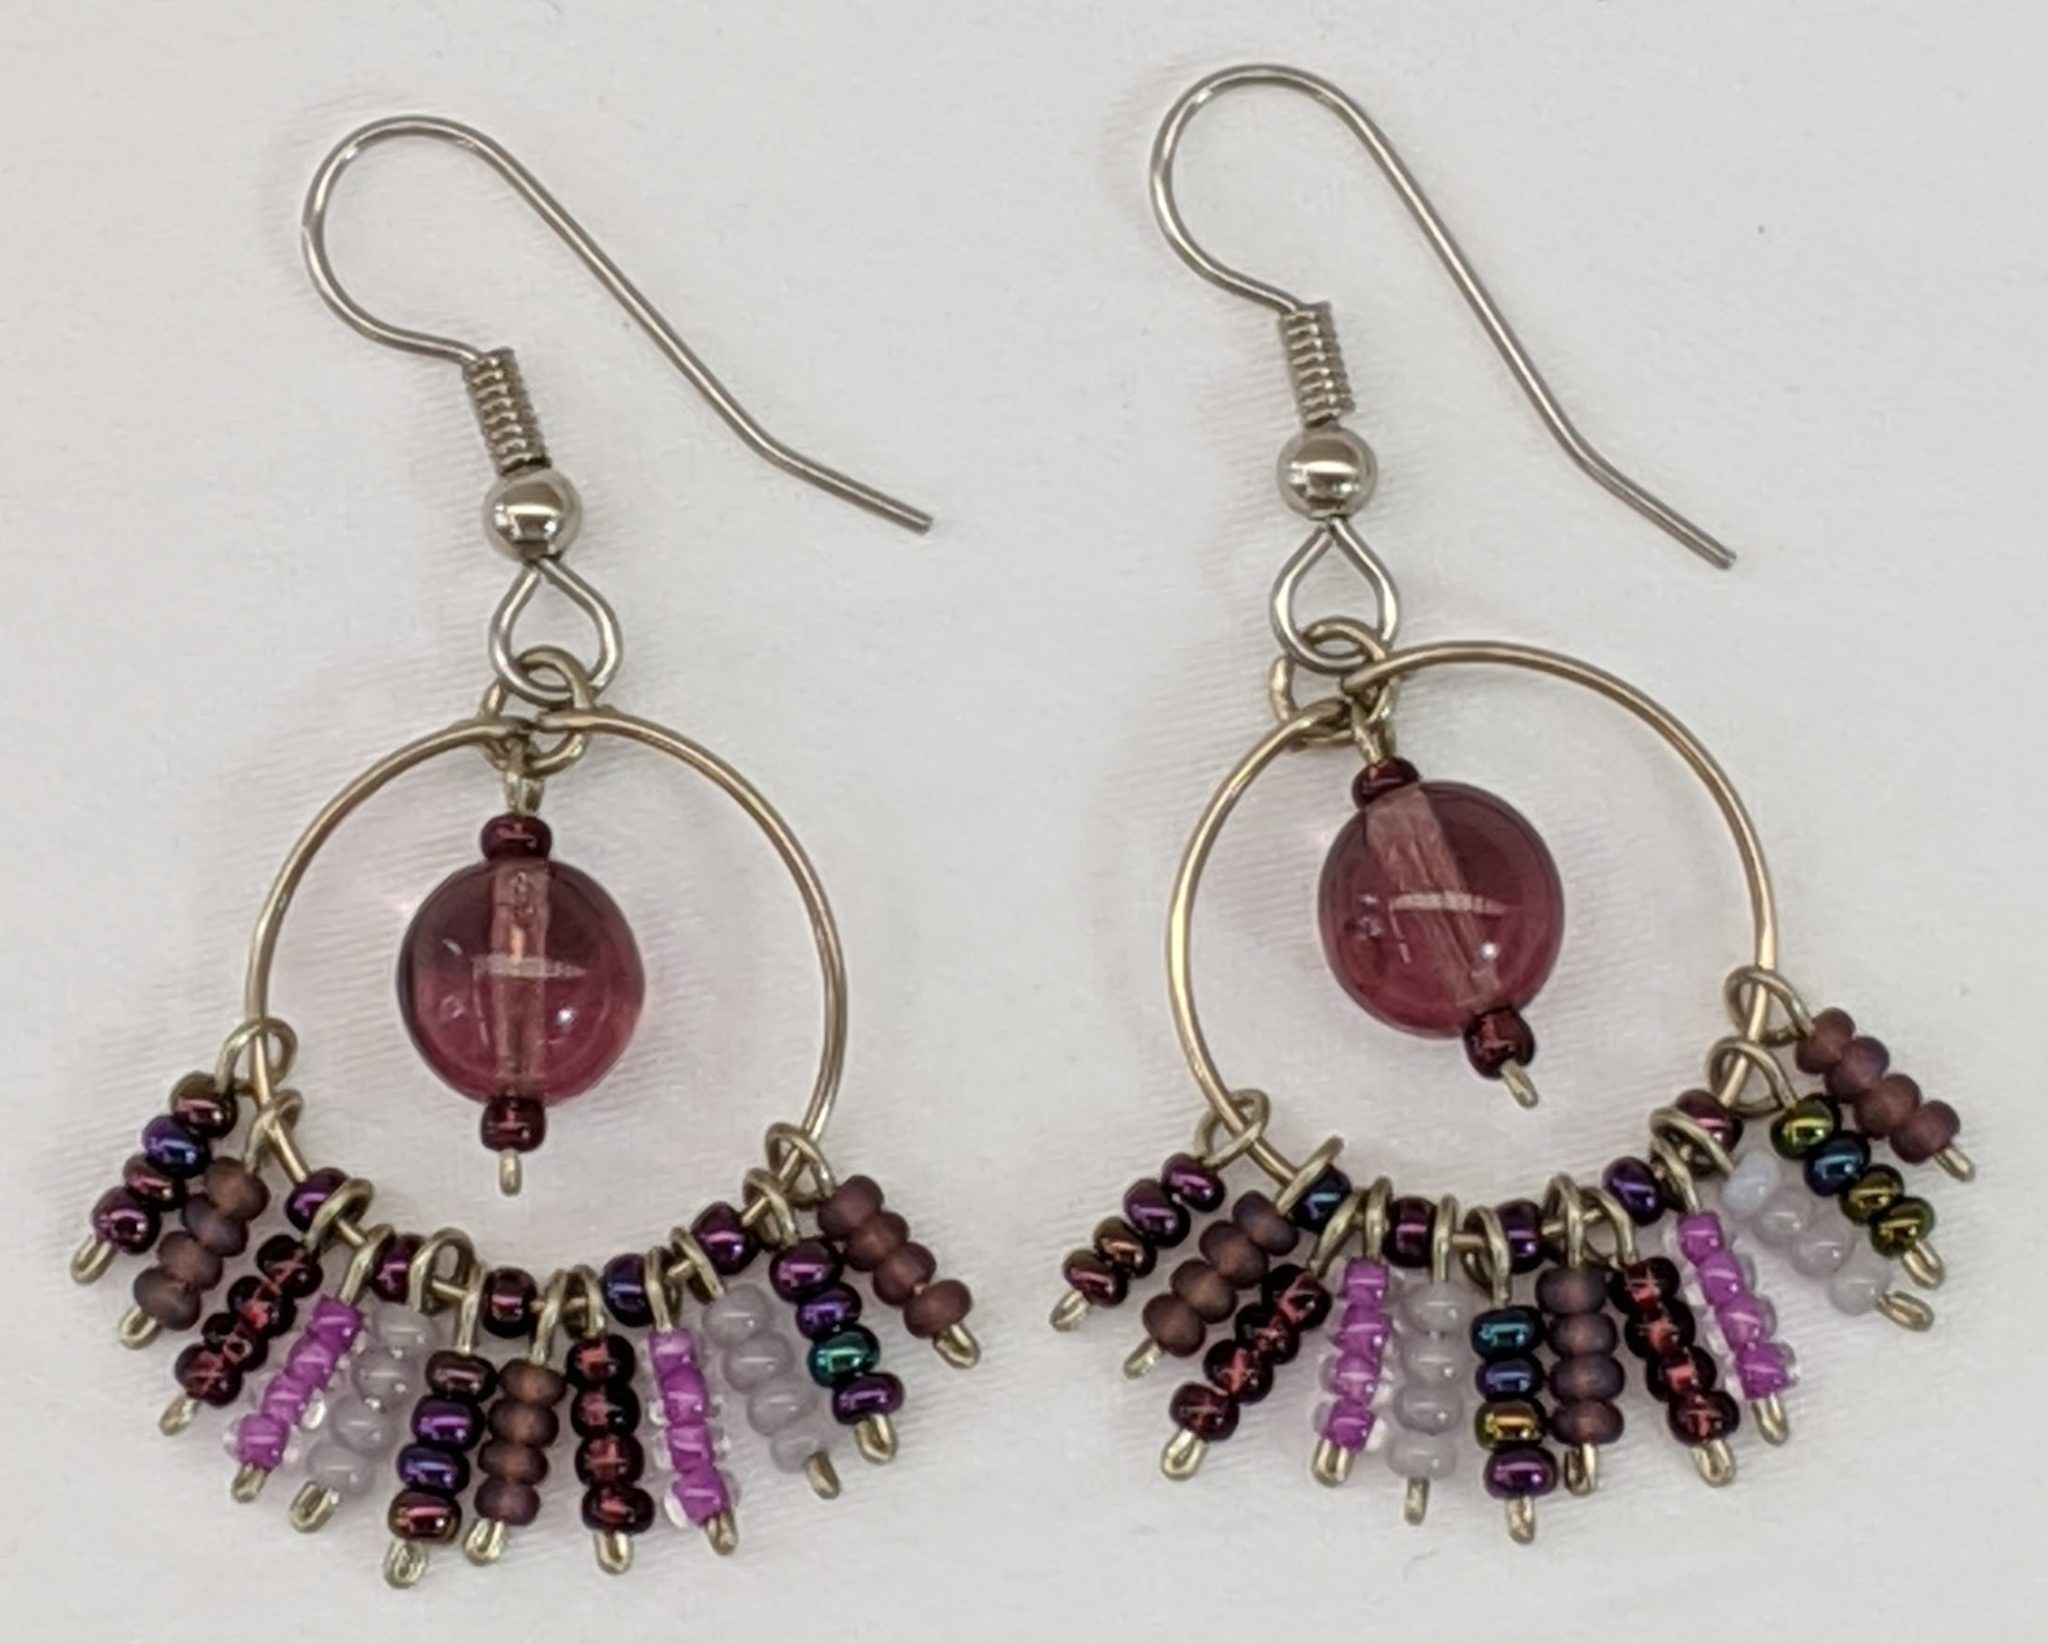 Circle Fringe Beaded Earrings - Purples